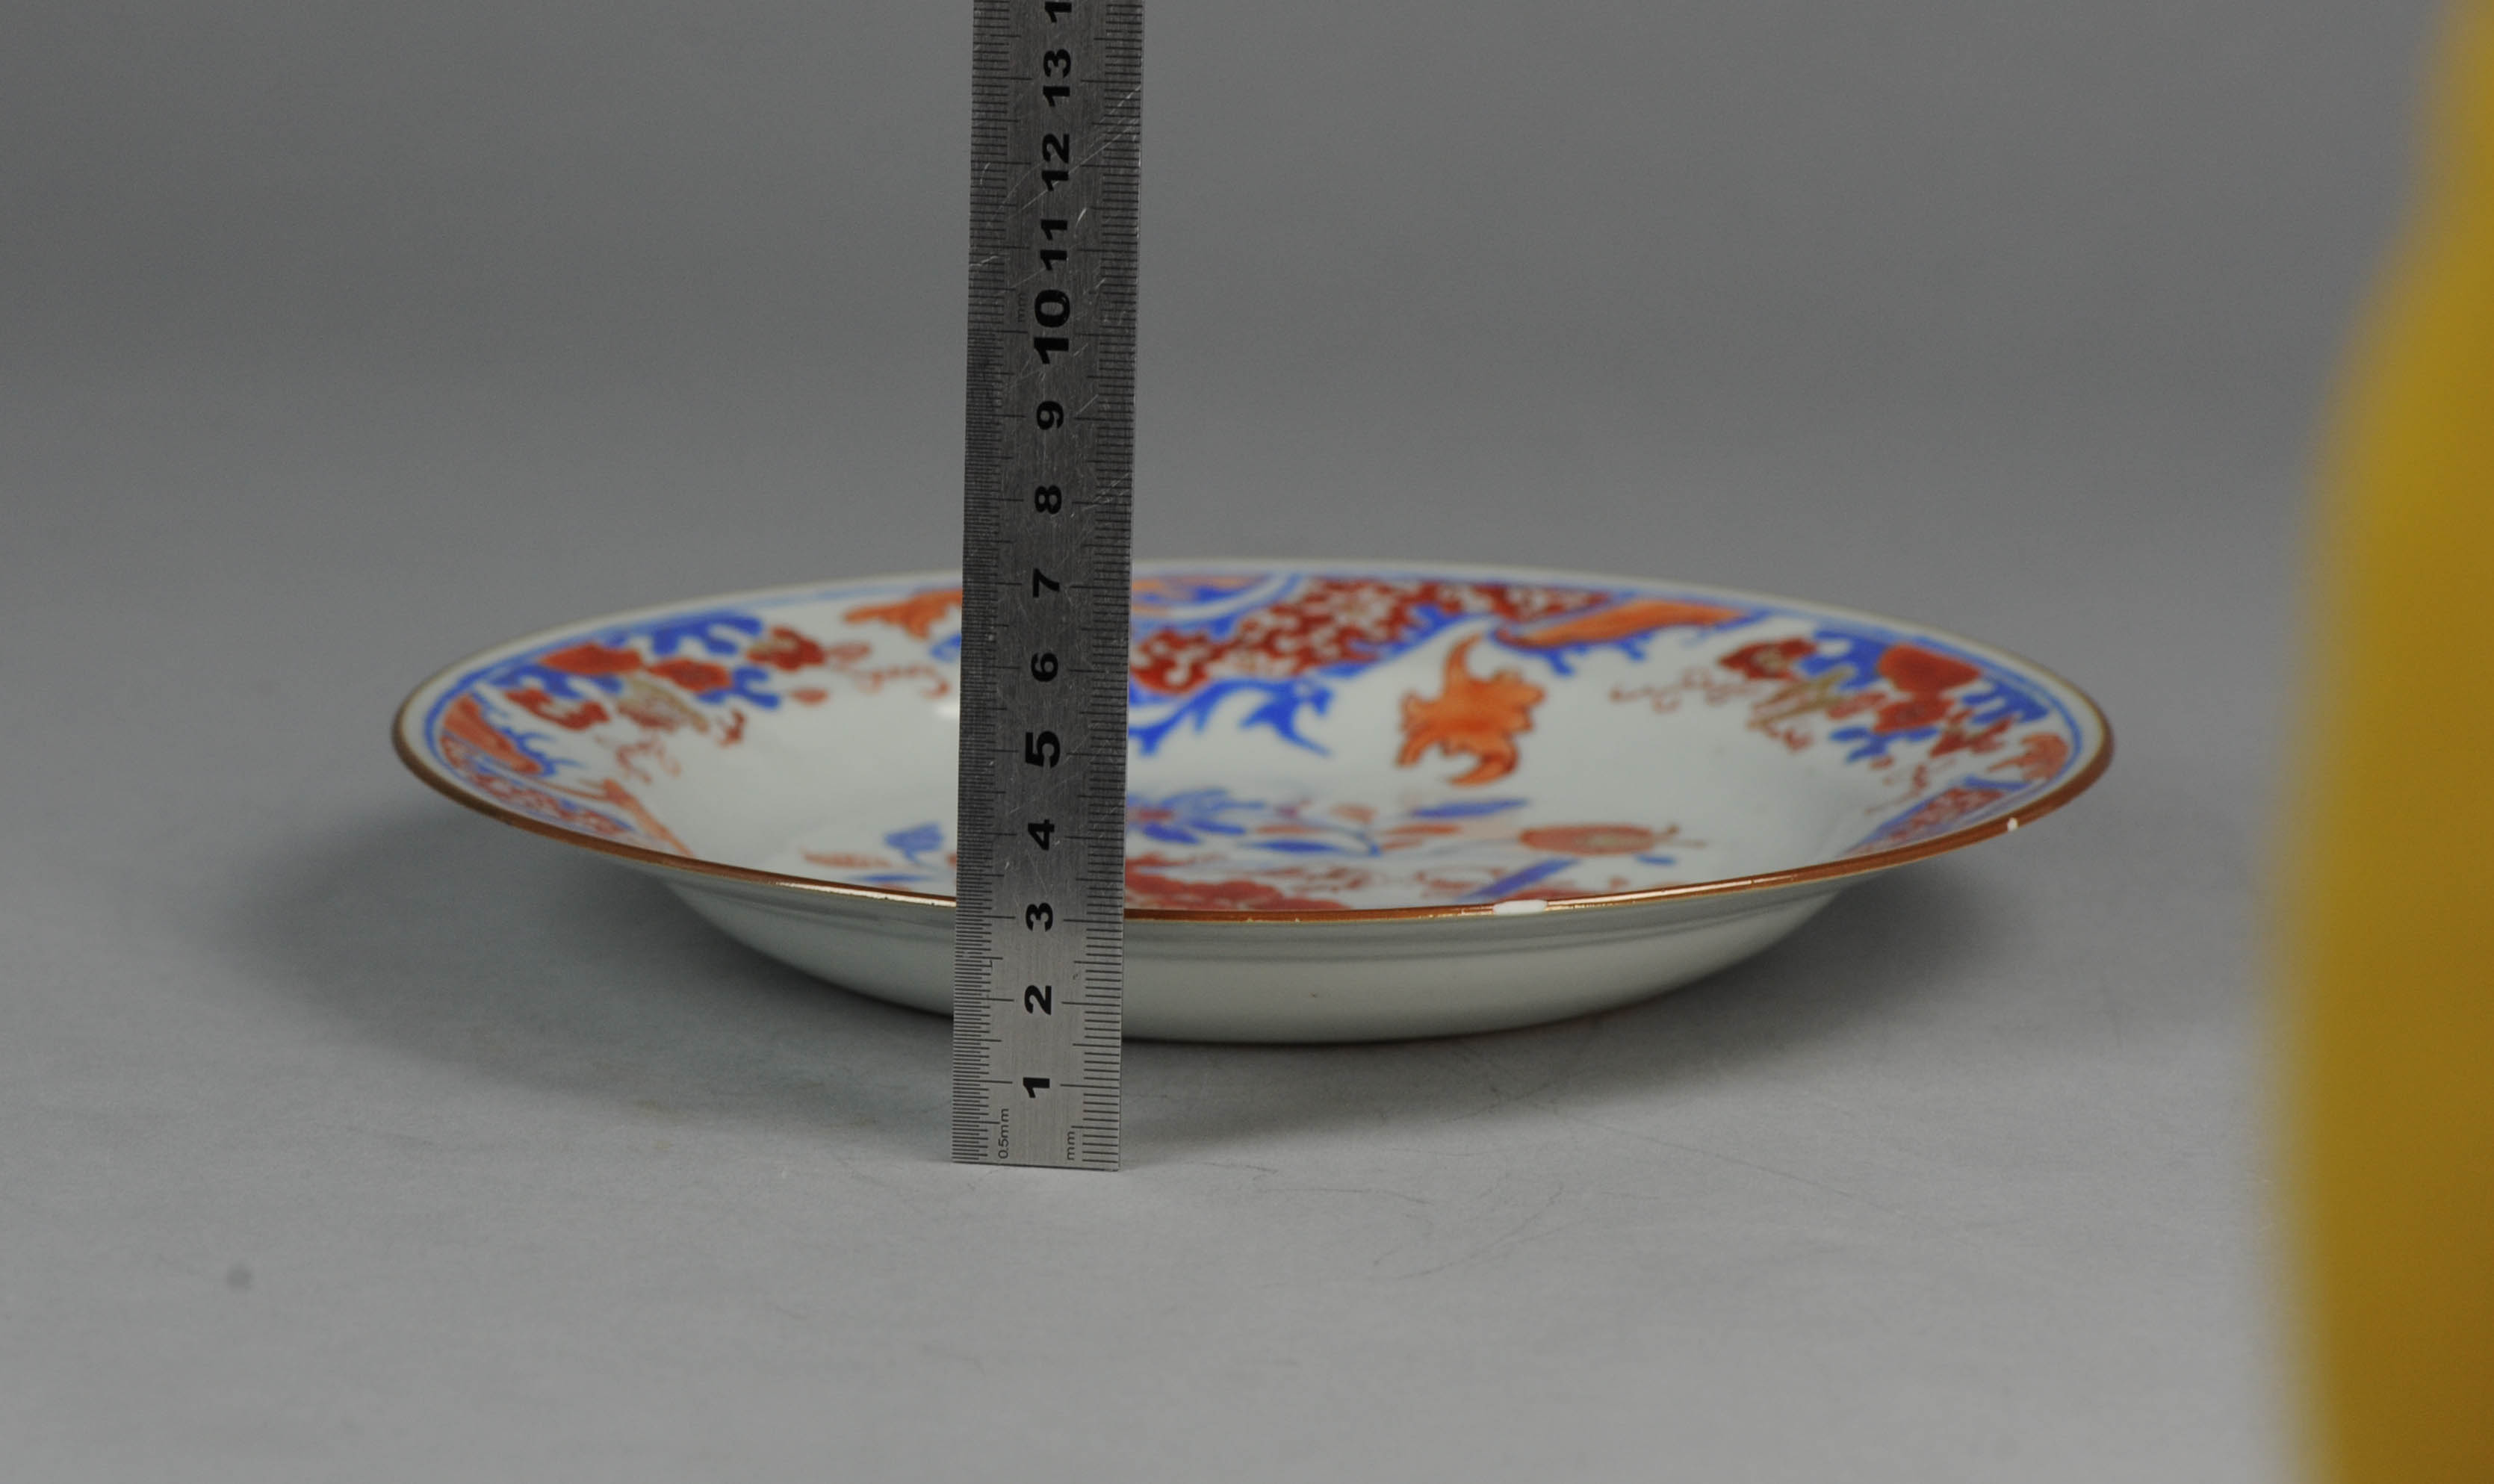 Antique 18th Chinese Porcelain Dinner Plate Scroll Red & Antique Scroll Dinnerware - Castrophotos